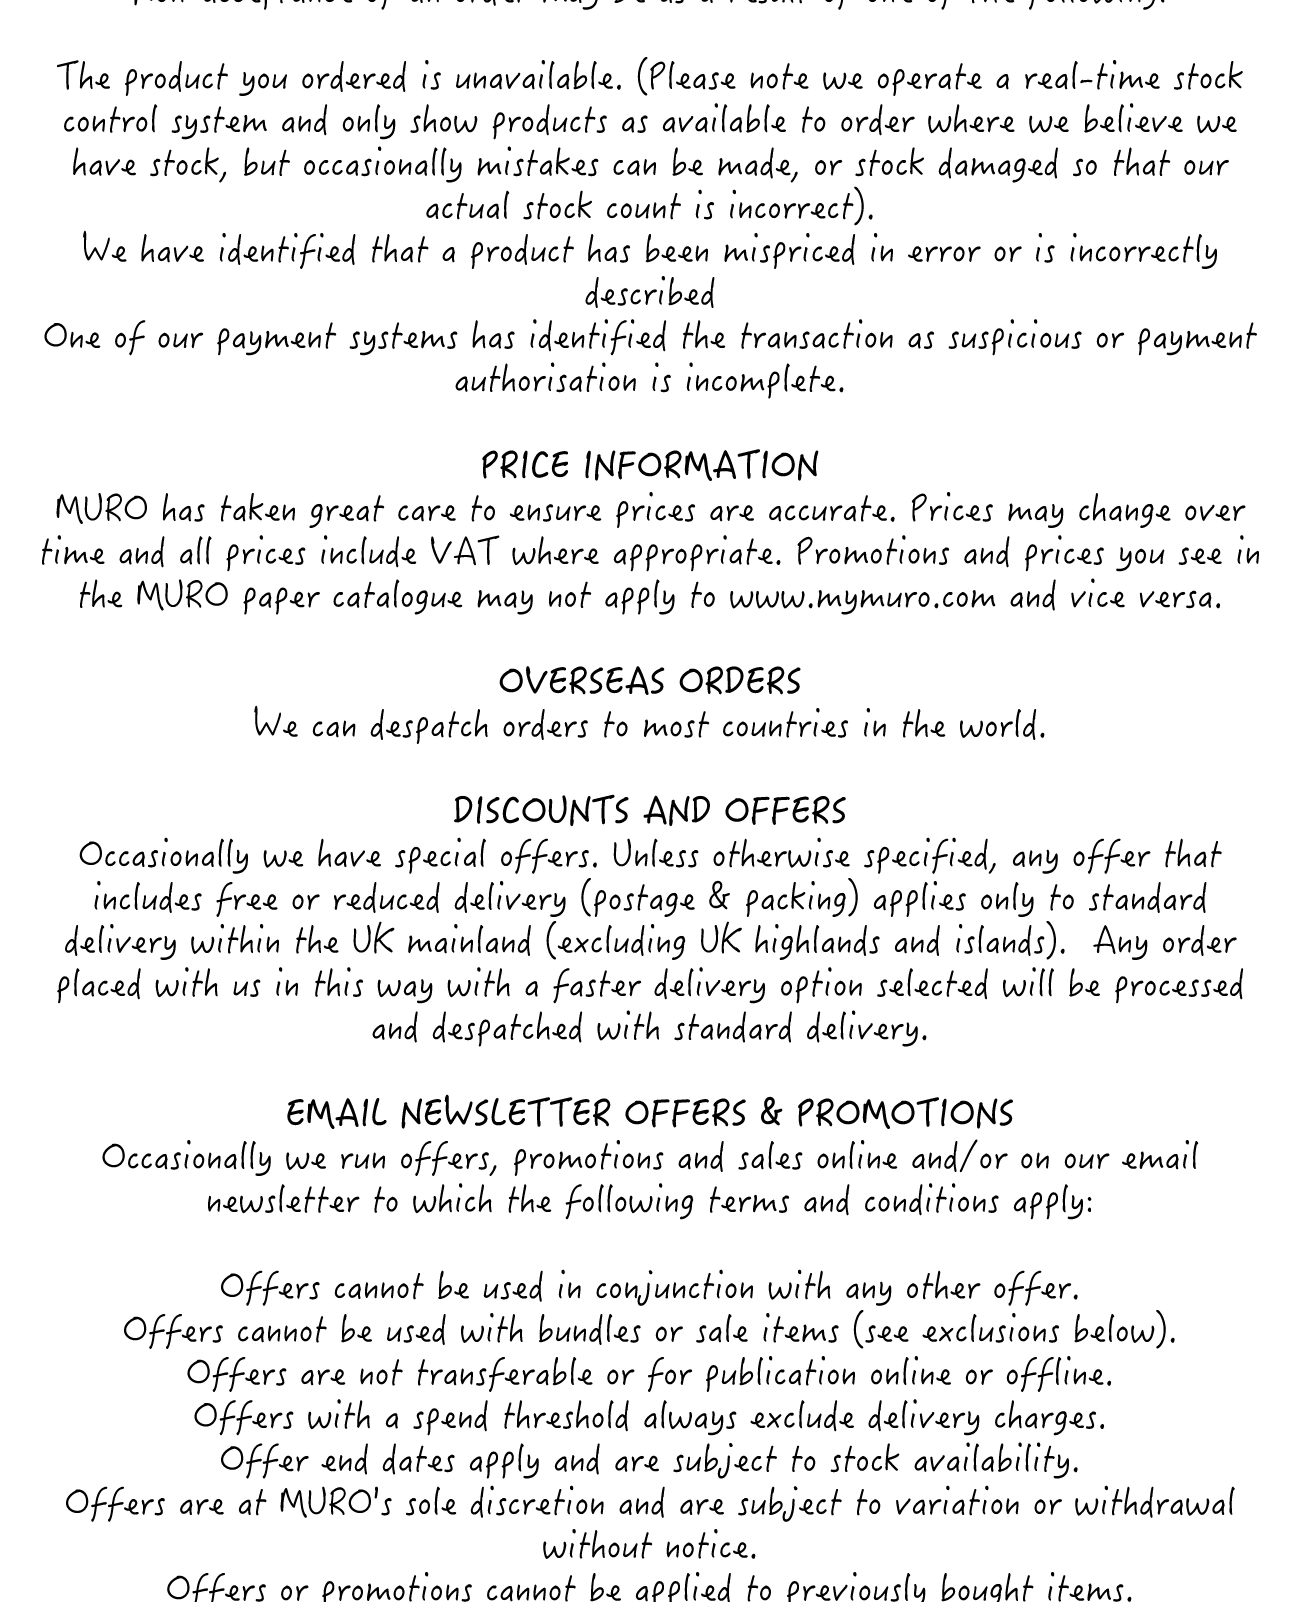 Here is our terms and conditions. If you have any enquiries, please get in touch with us at info@mymuro.com or through our social media.